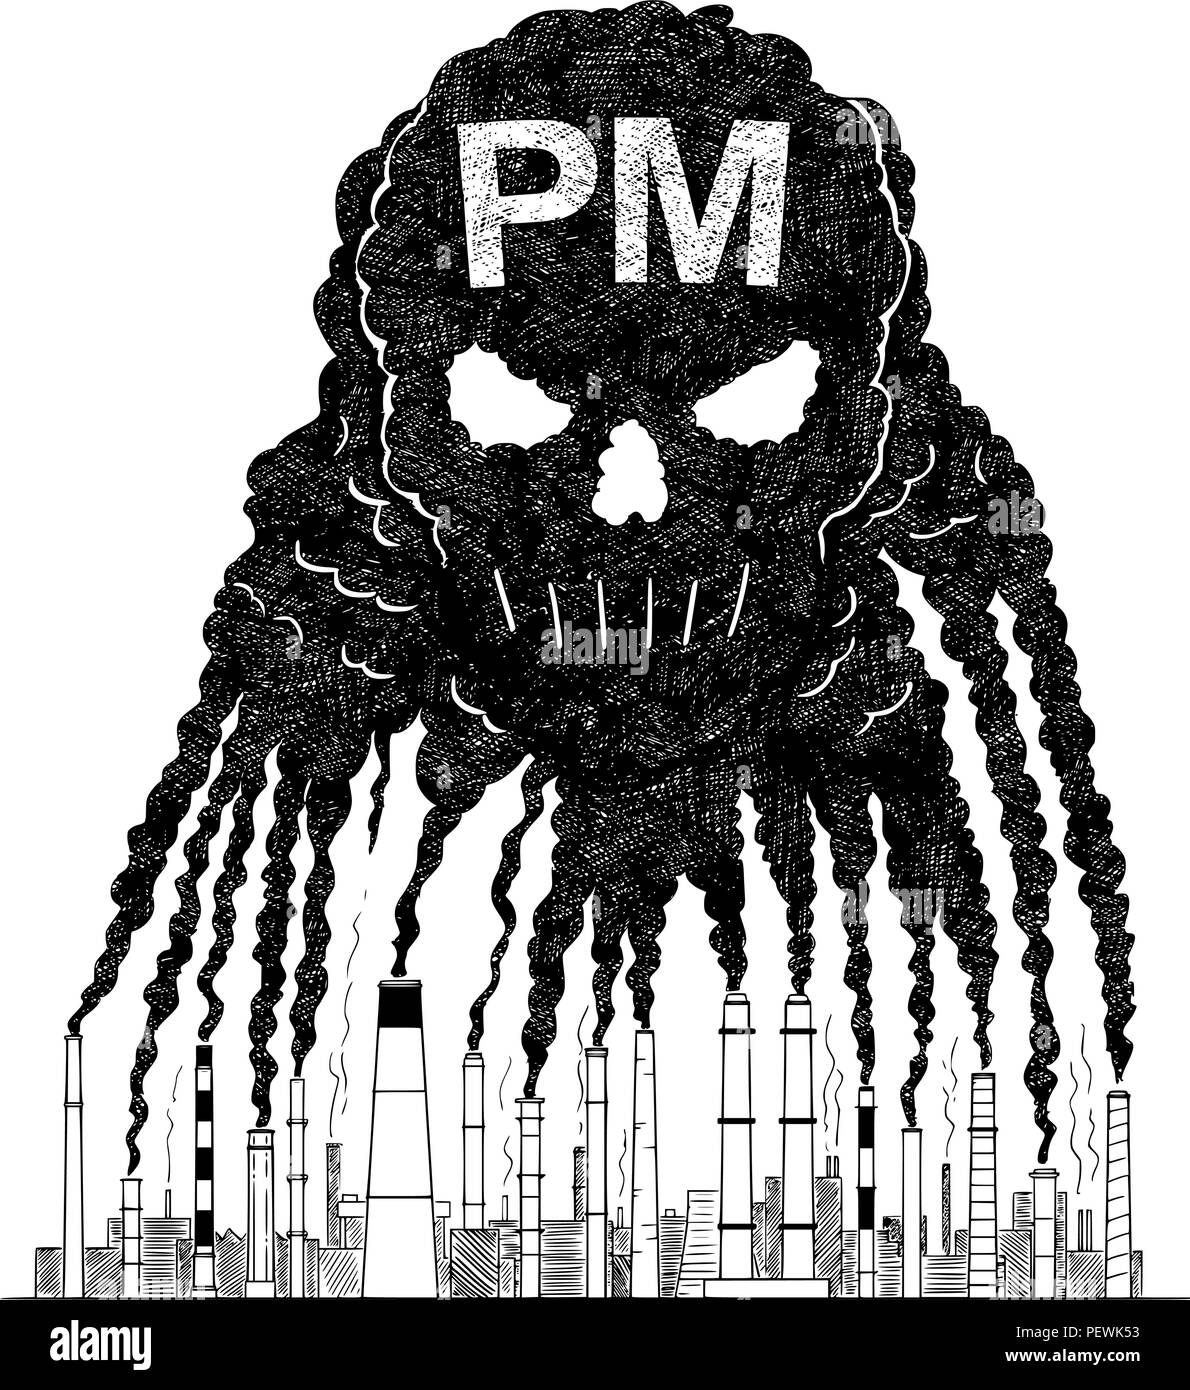 Vector artistic drawing illustration of smoke from smokestacks creating human skull concept of pm air pollution